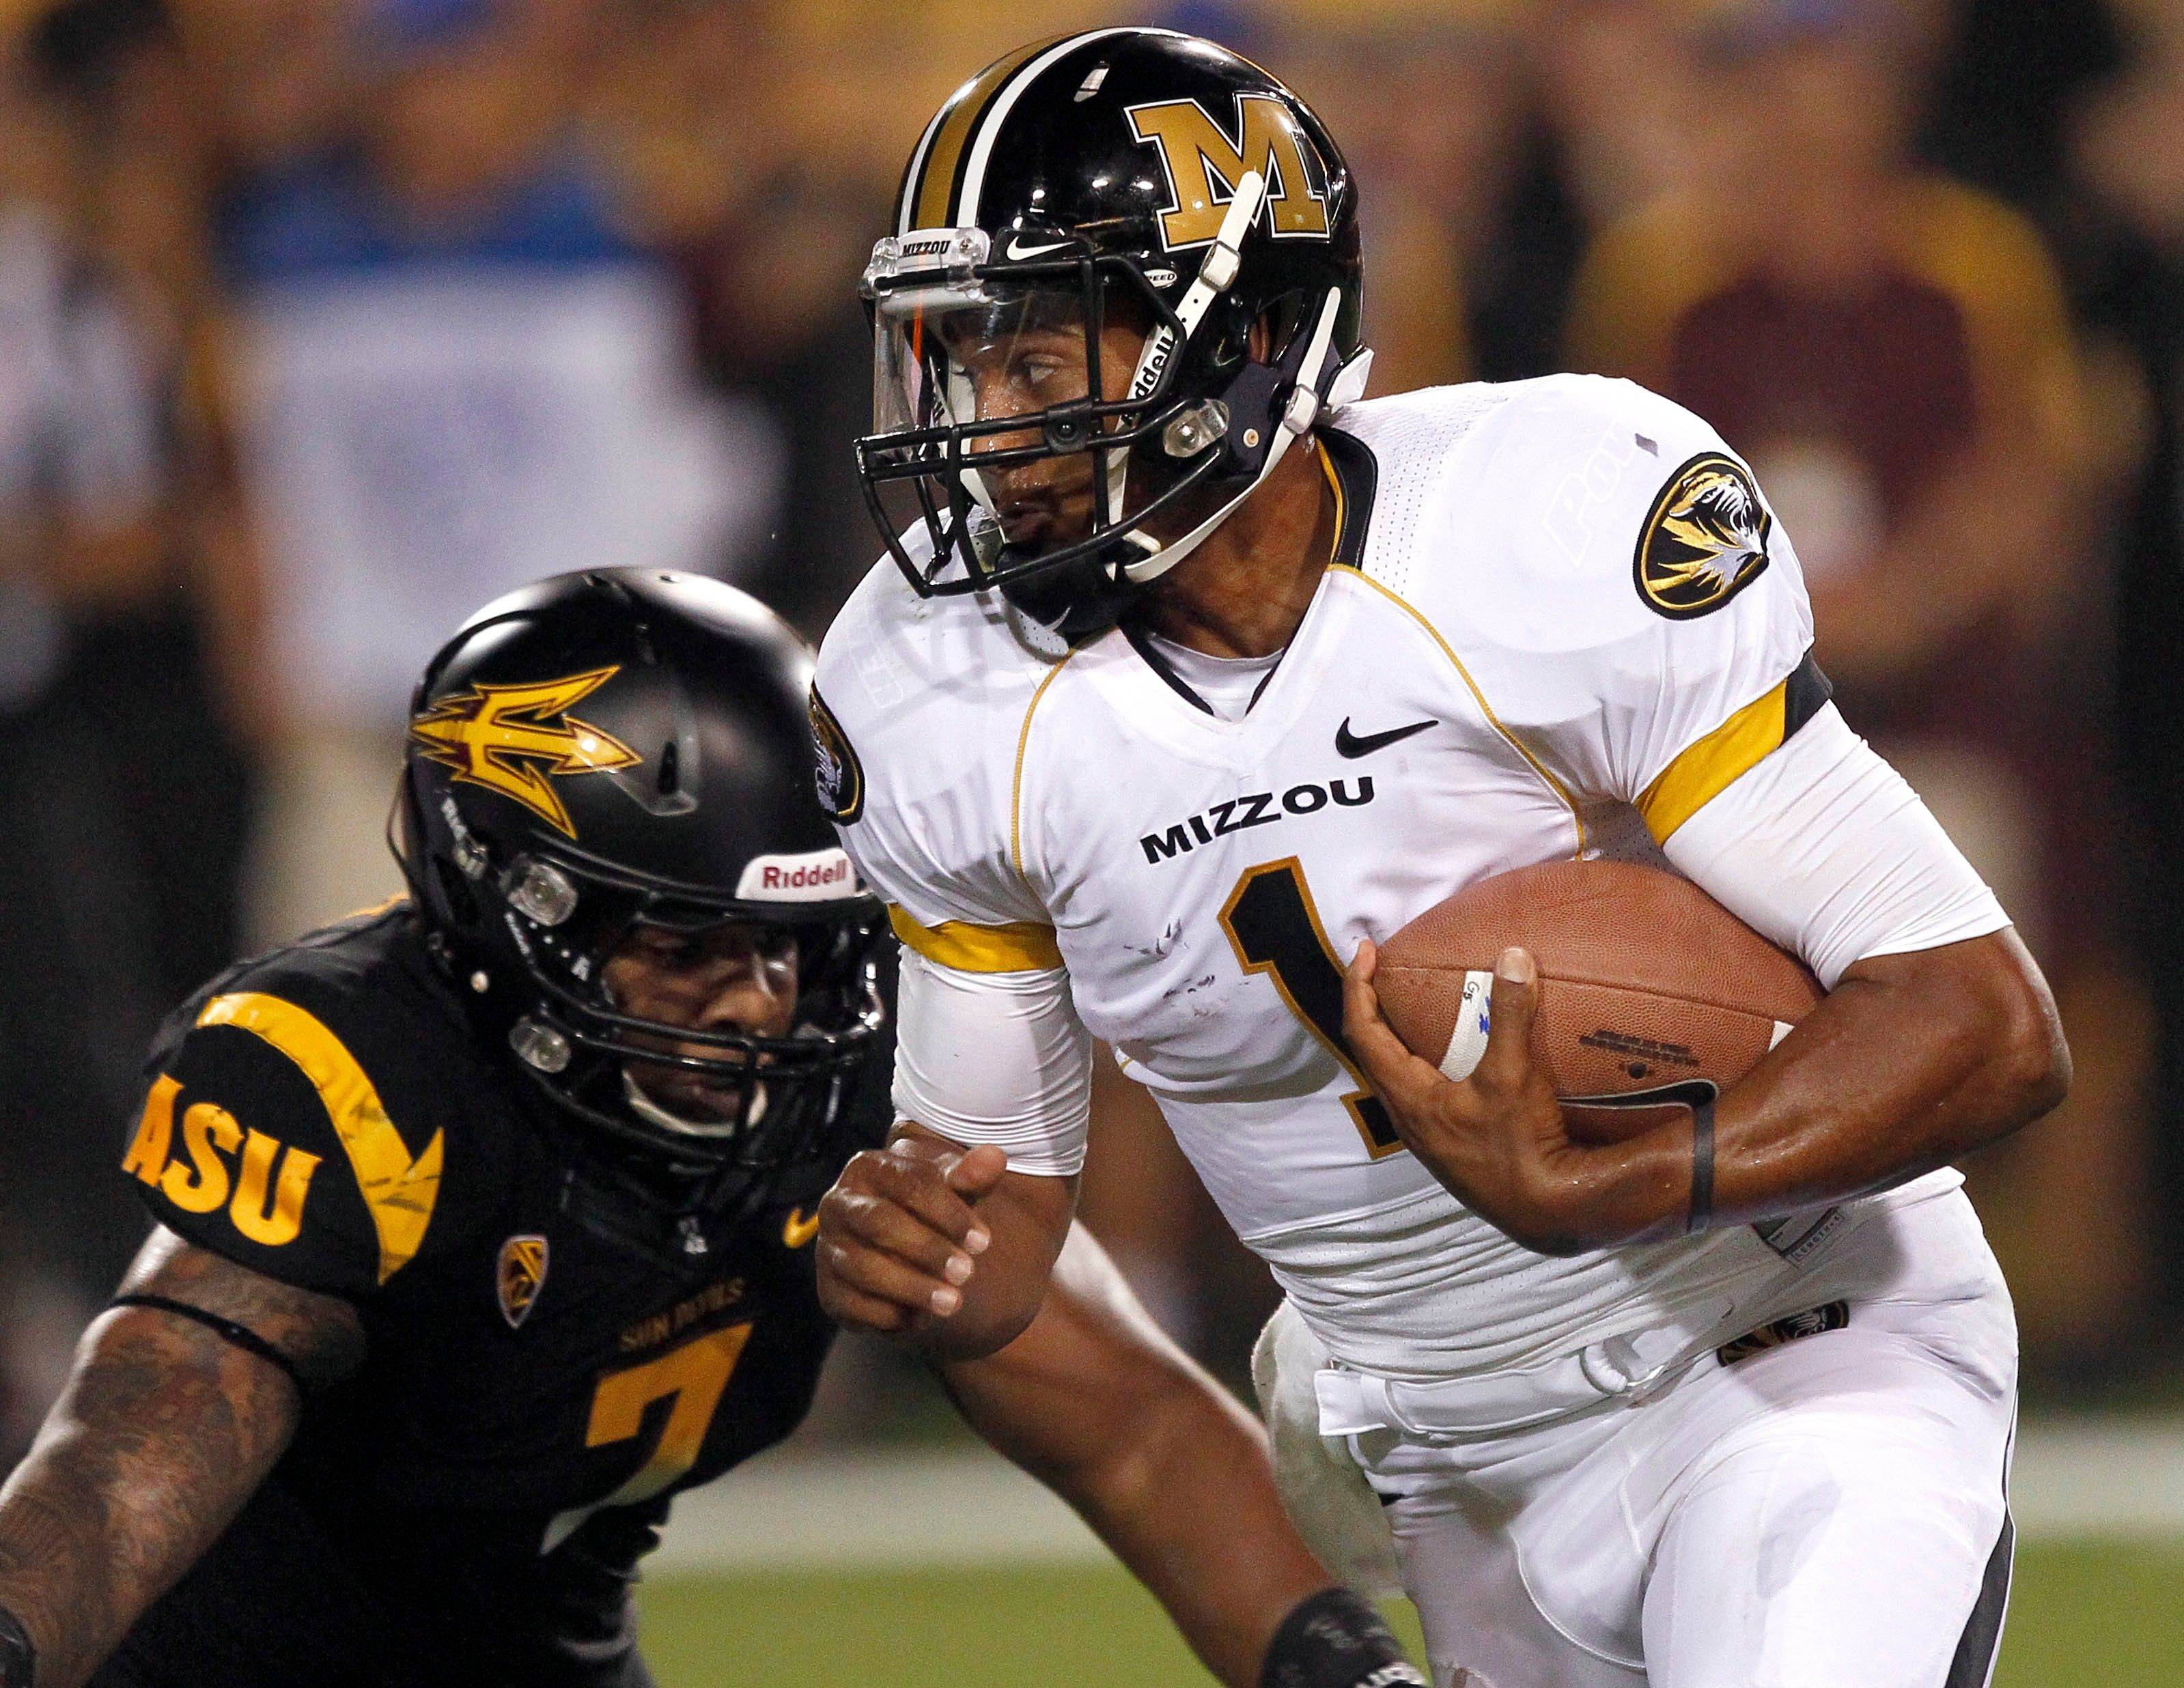 Missouri quarterback James Franklin is pressured by Arizona State linebacker Vontaze Burfict on Sept. 9. Burfict invades Memorial Stadium as his Sun Devils take on the Illini on Saturday.